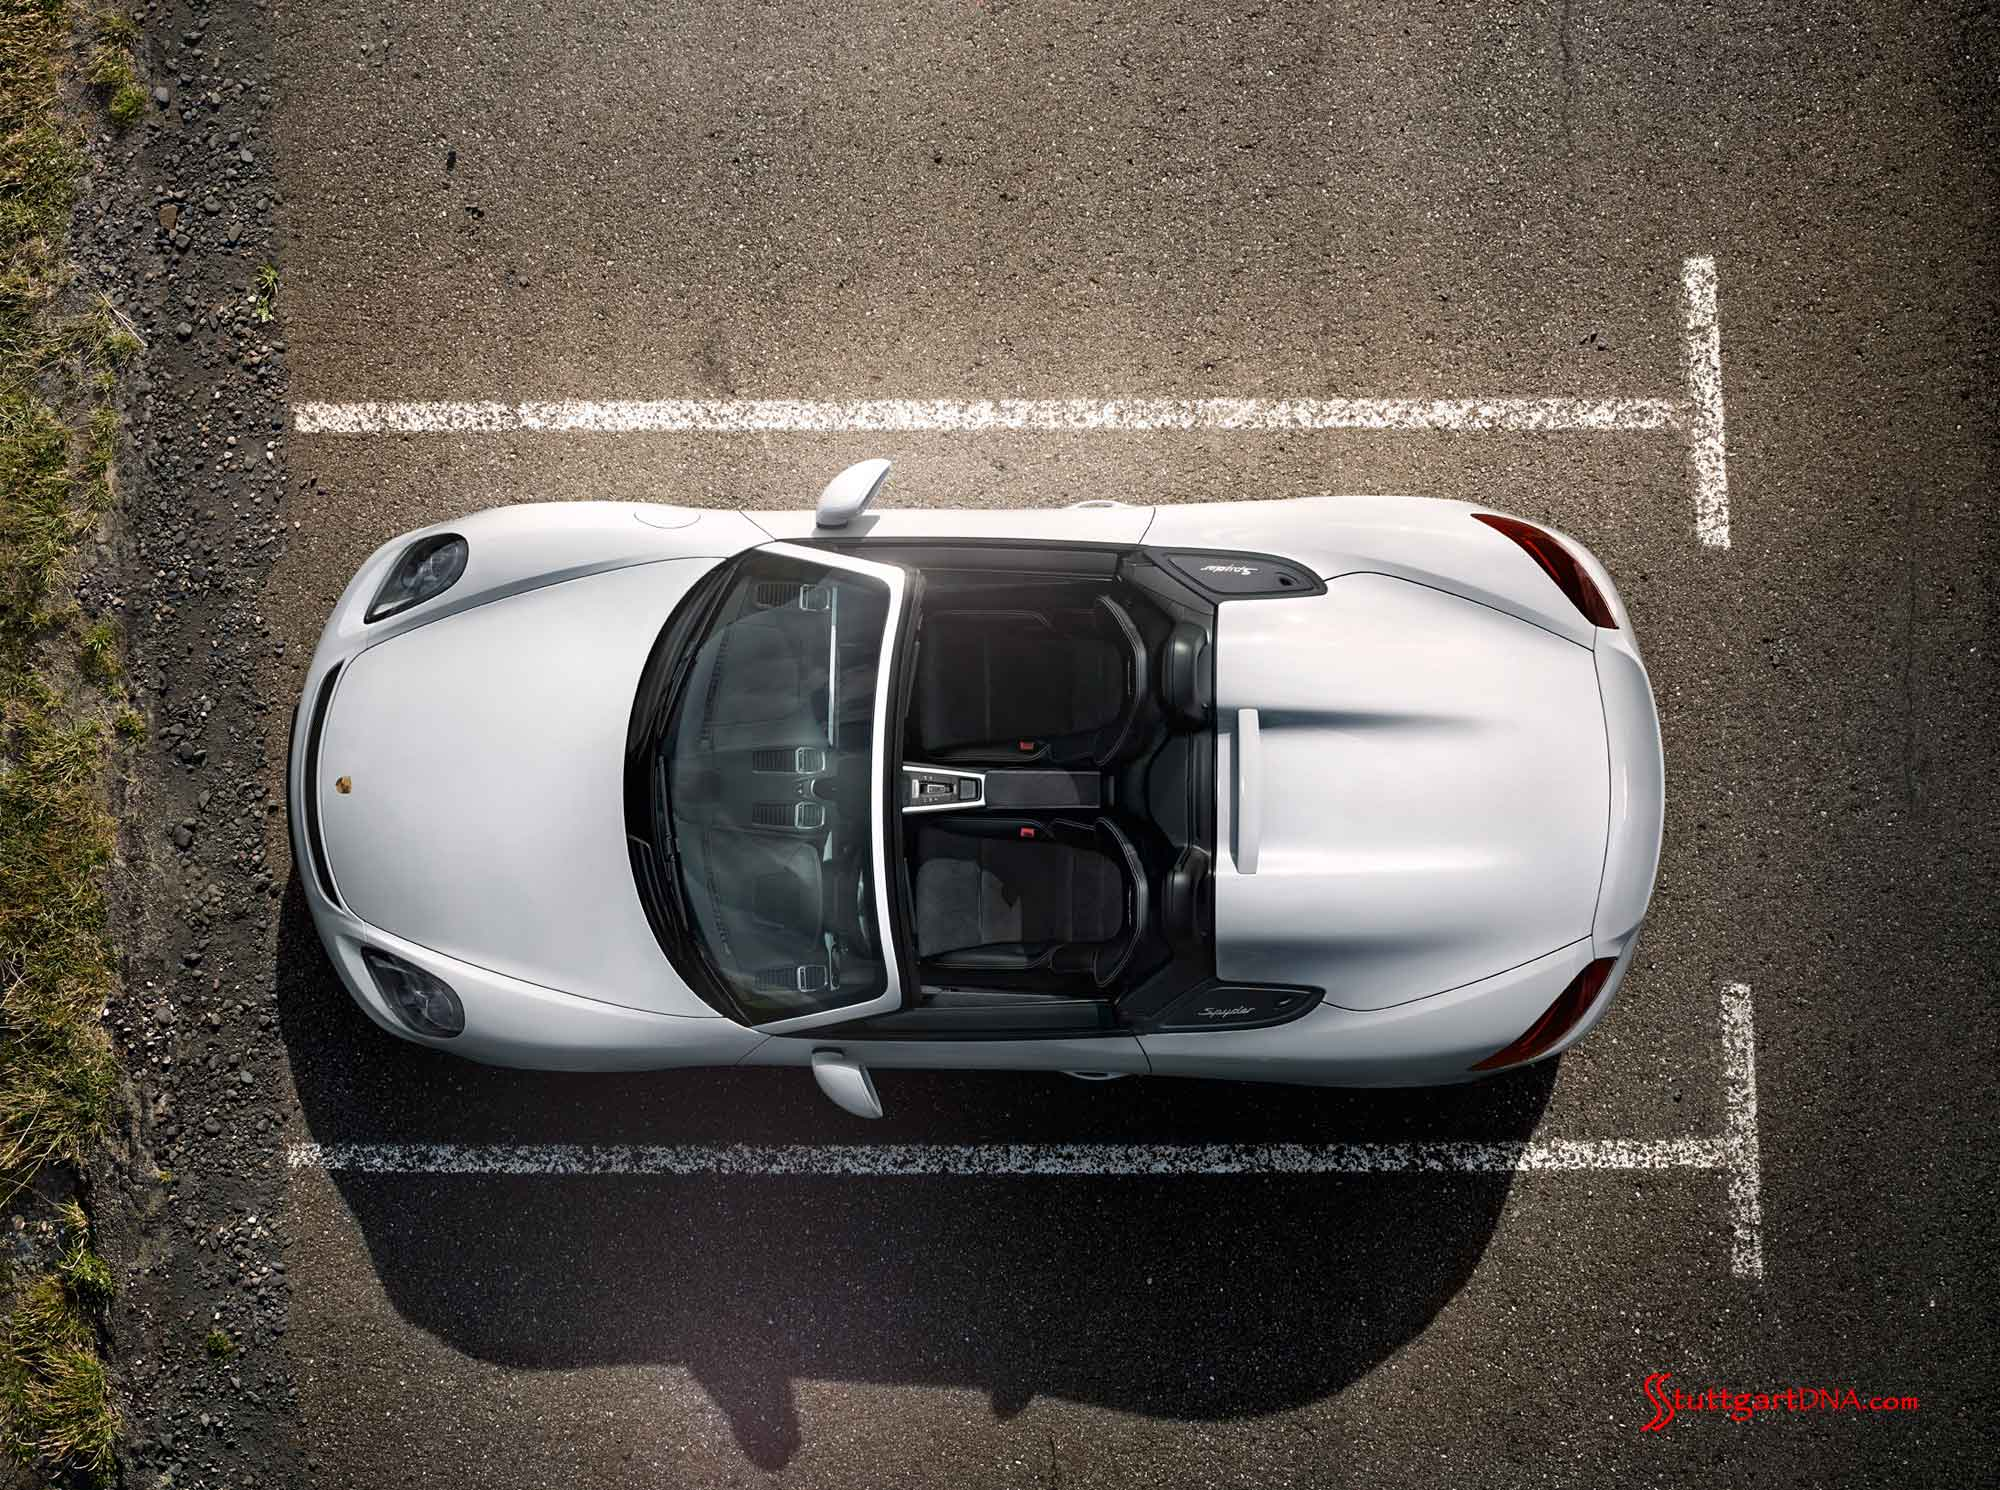 Boxster-Spyder-overhead-view-top-down-in-parking-space Mesmerizing Porsche 918 Spyder London Ontario Cars Trend